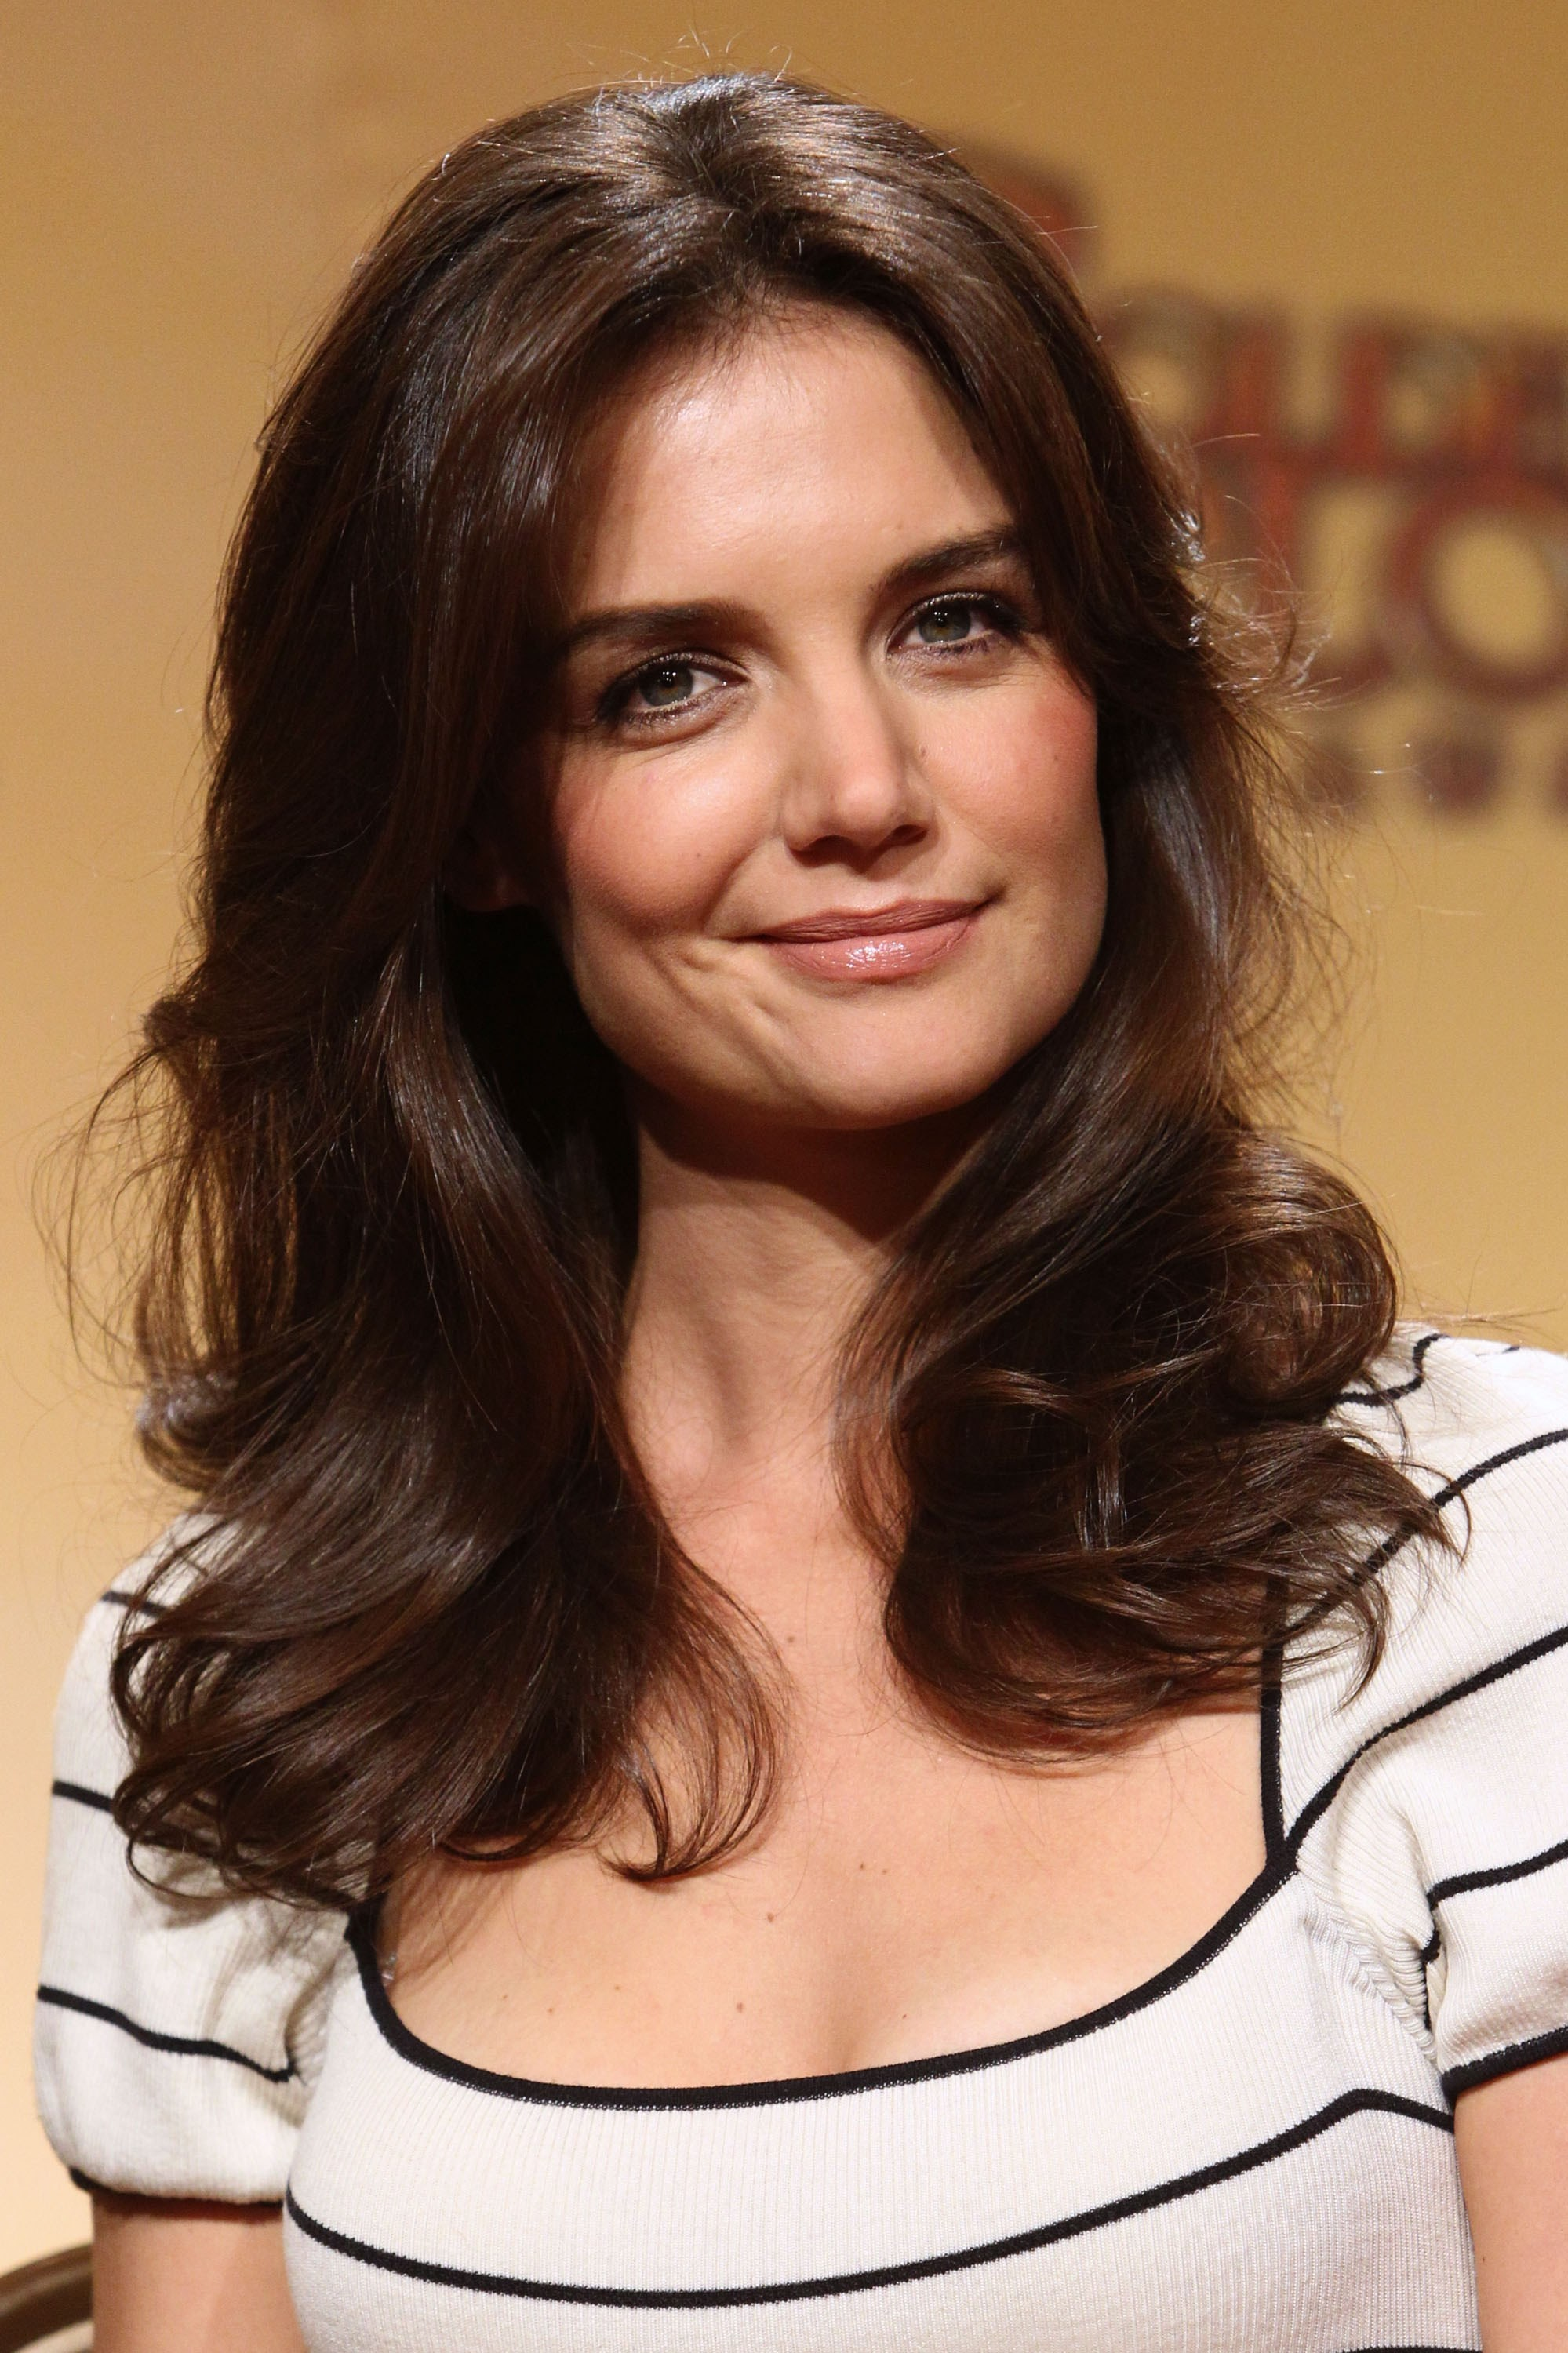 Katie Holmes | Known people - famous people news and ... Katie Holmes